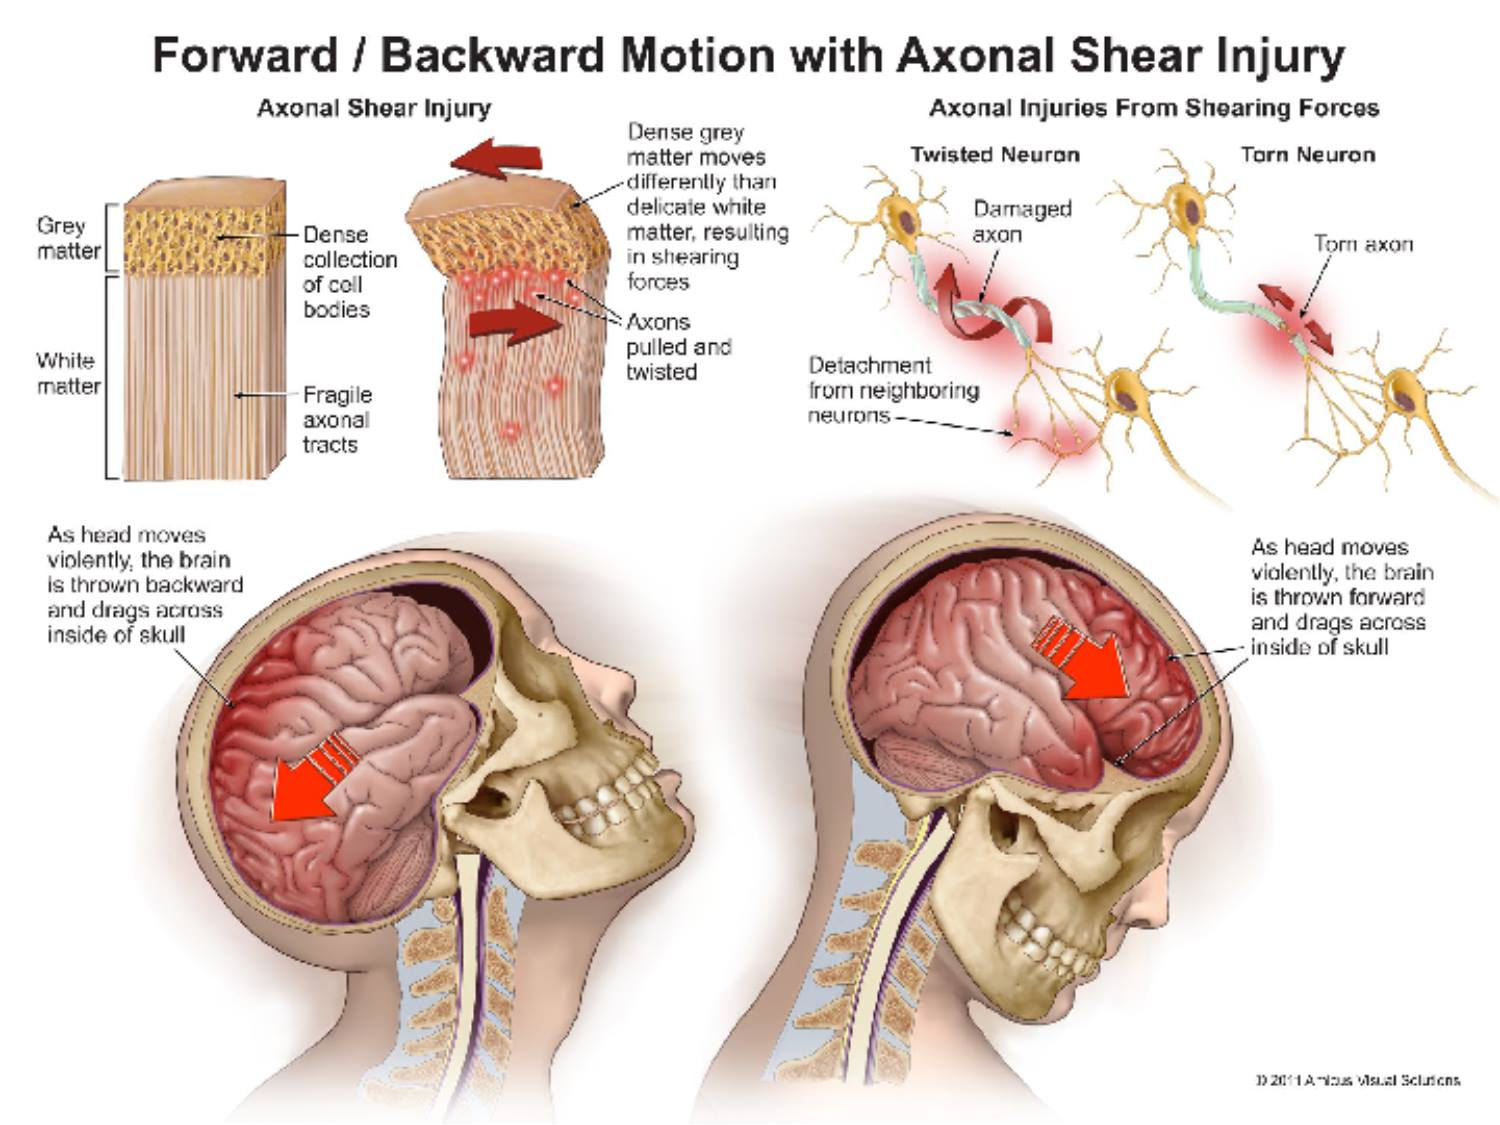 image of axonal shear injury used in a trial